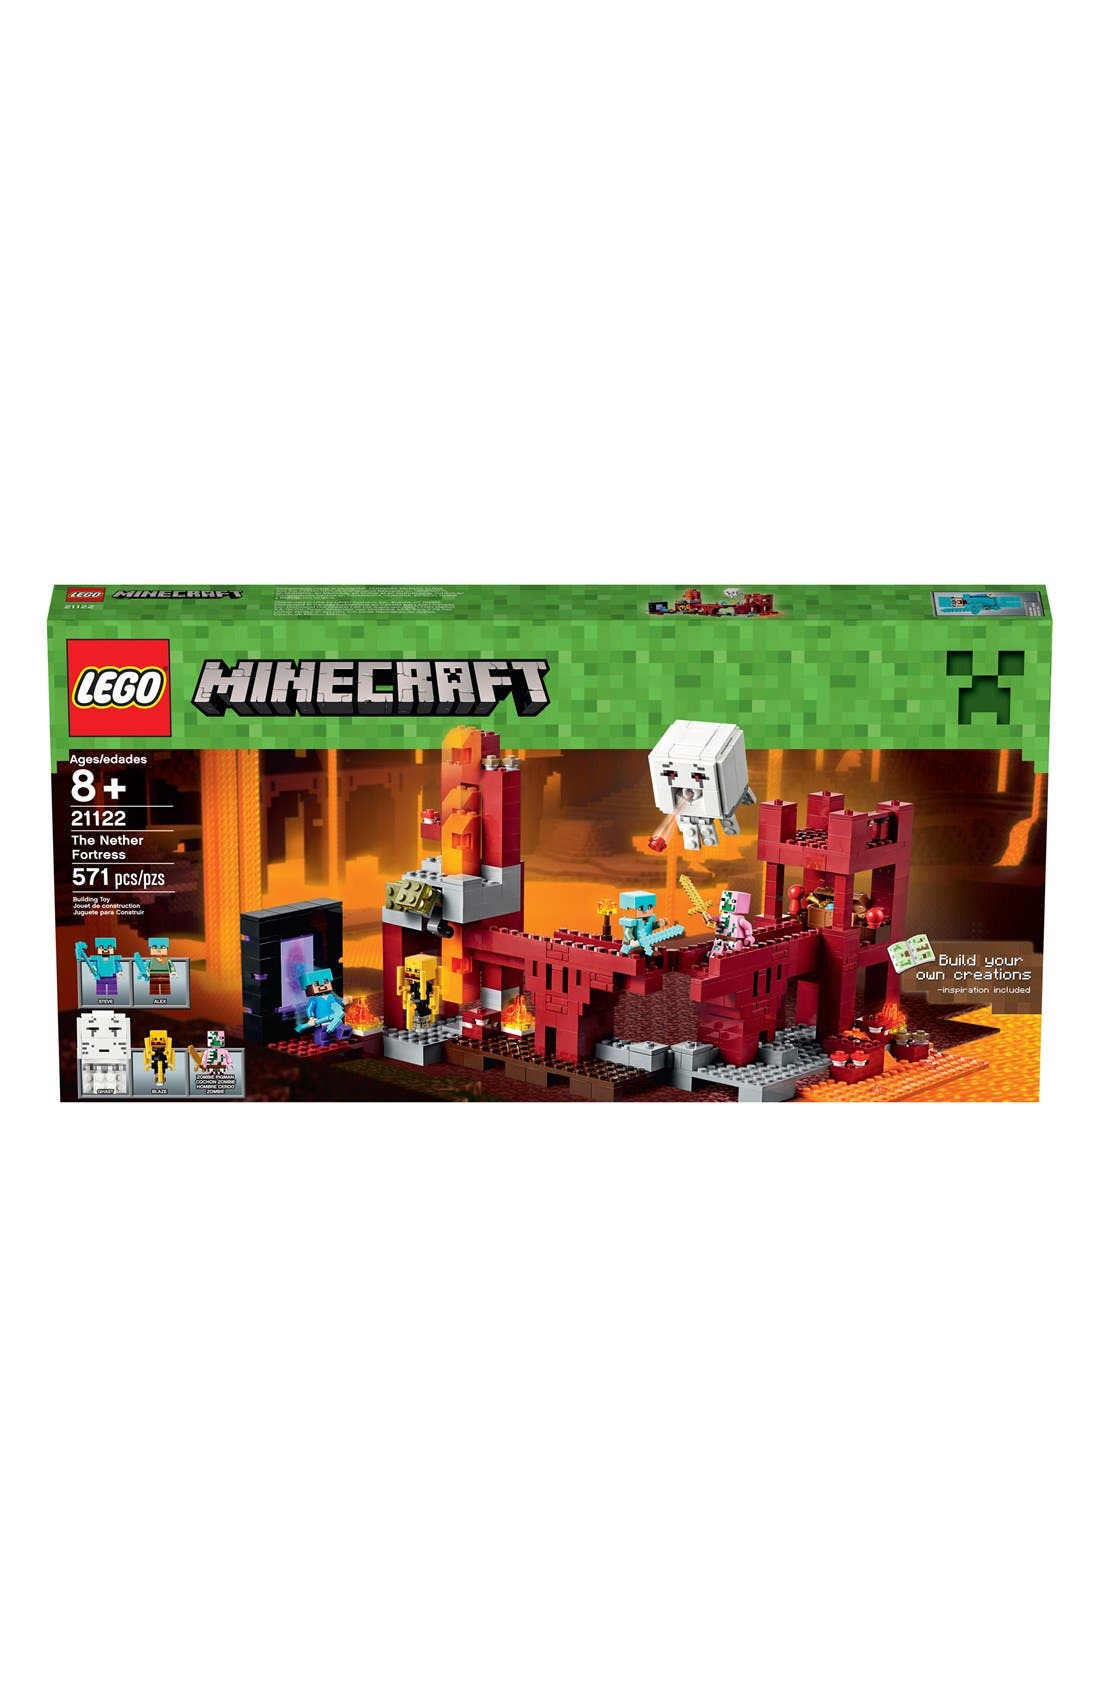 LEGO® Minecraft™ The Nether Fortress - 21122